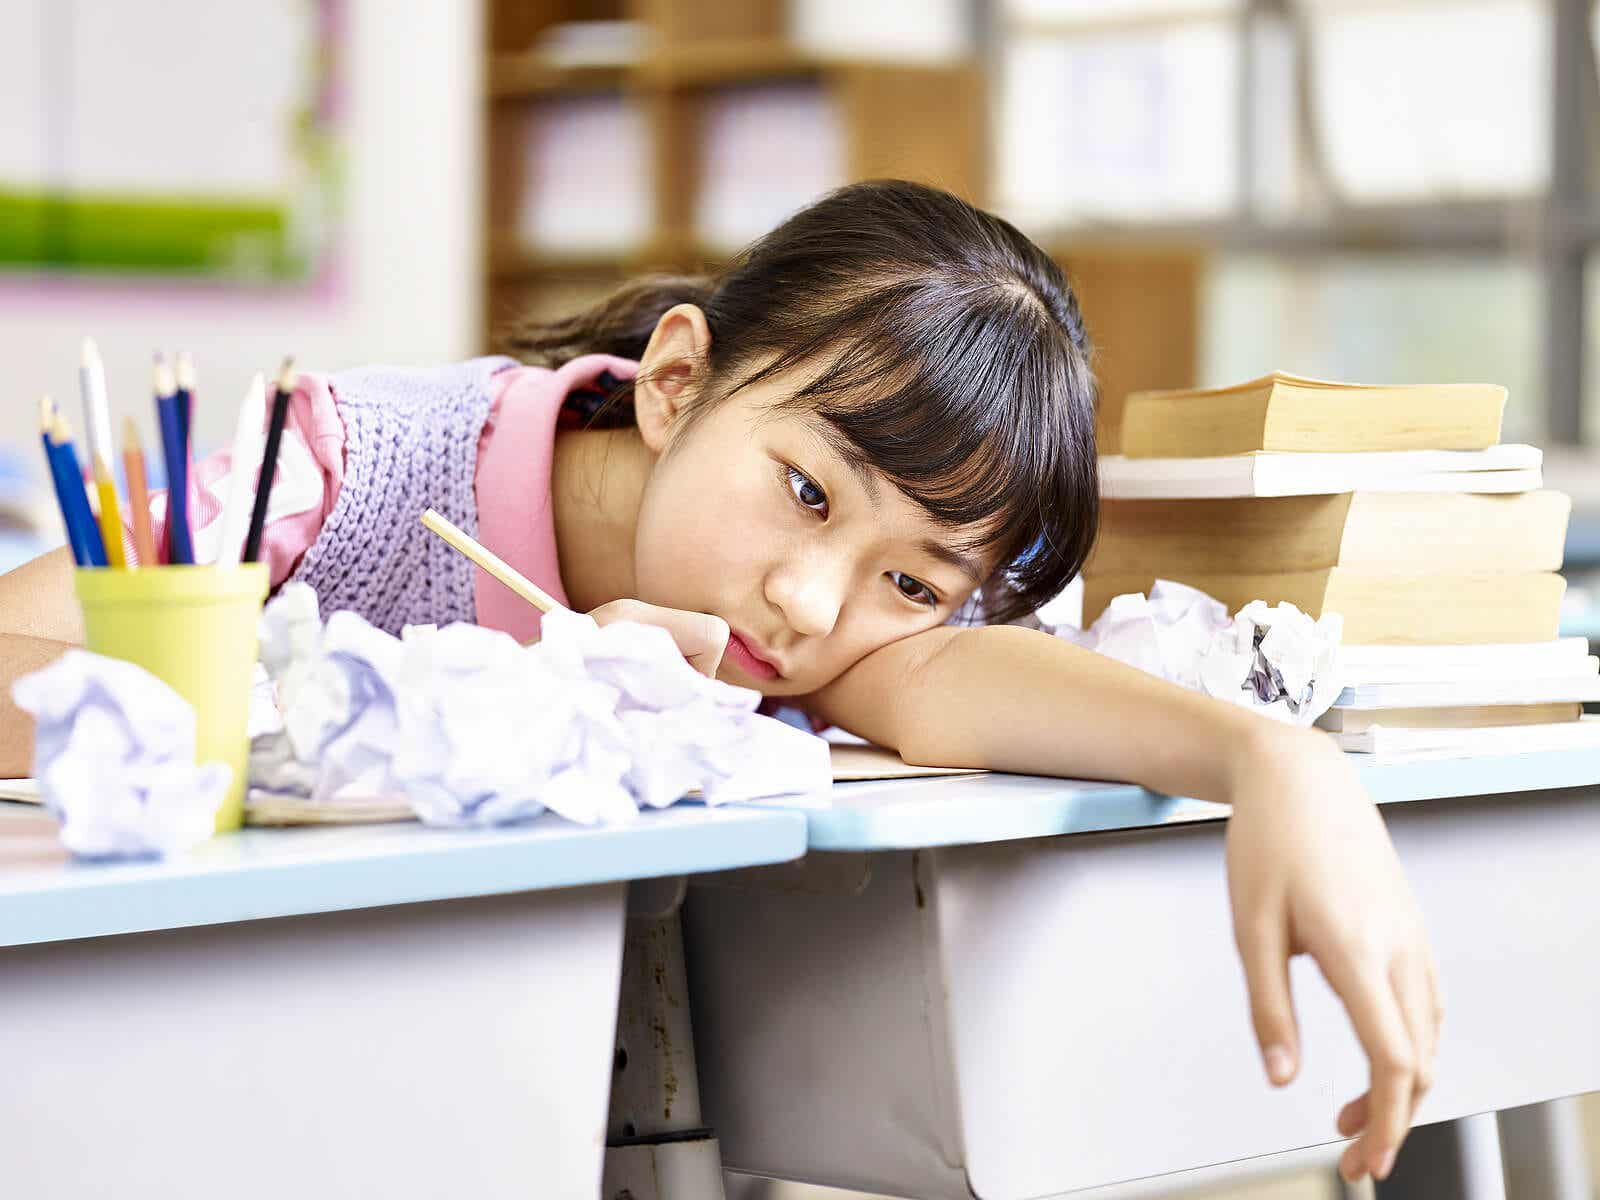 A preteen girl with her head on her school desk surrounded by crumpled up papers, looking bored.